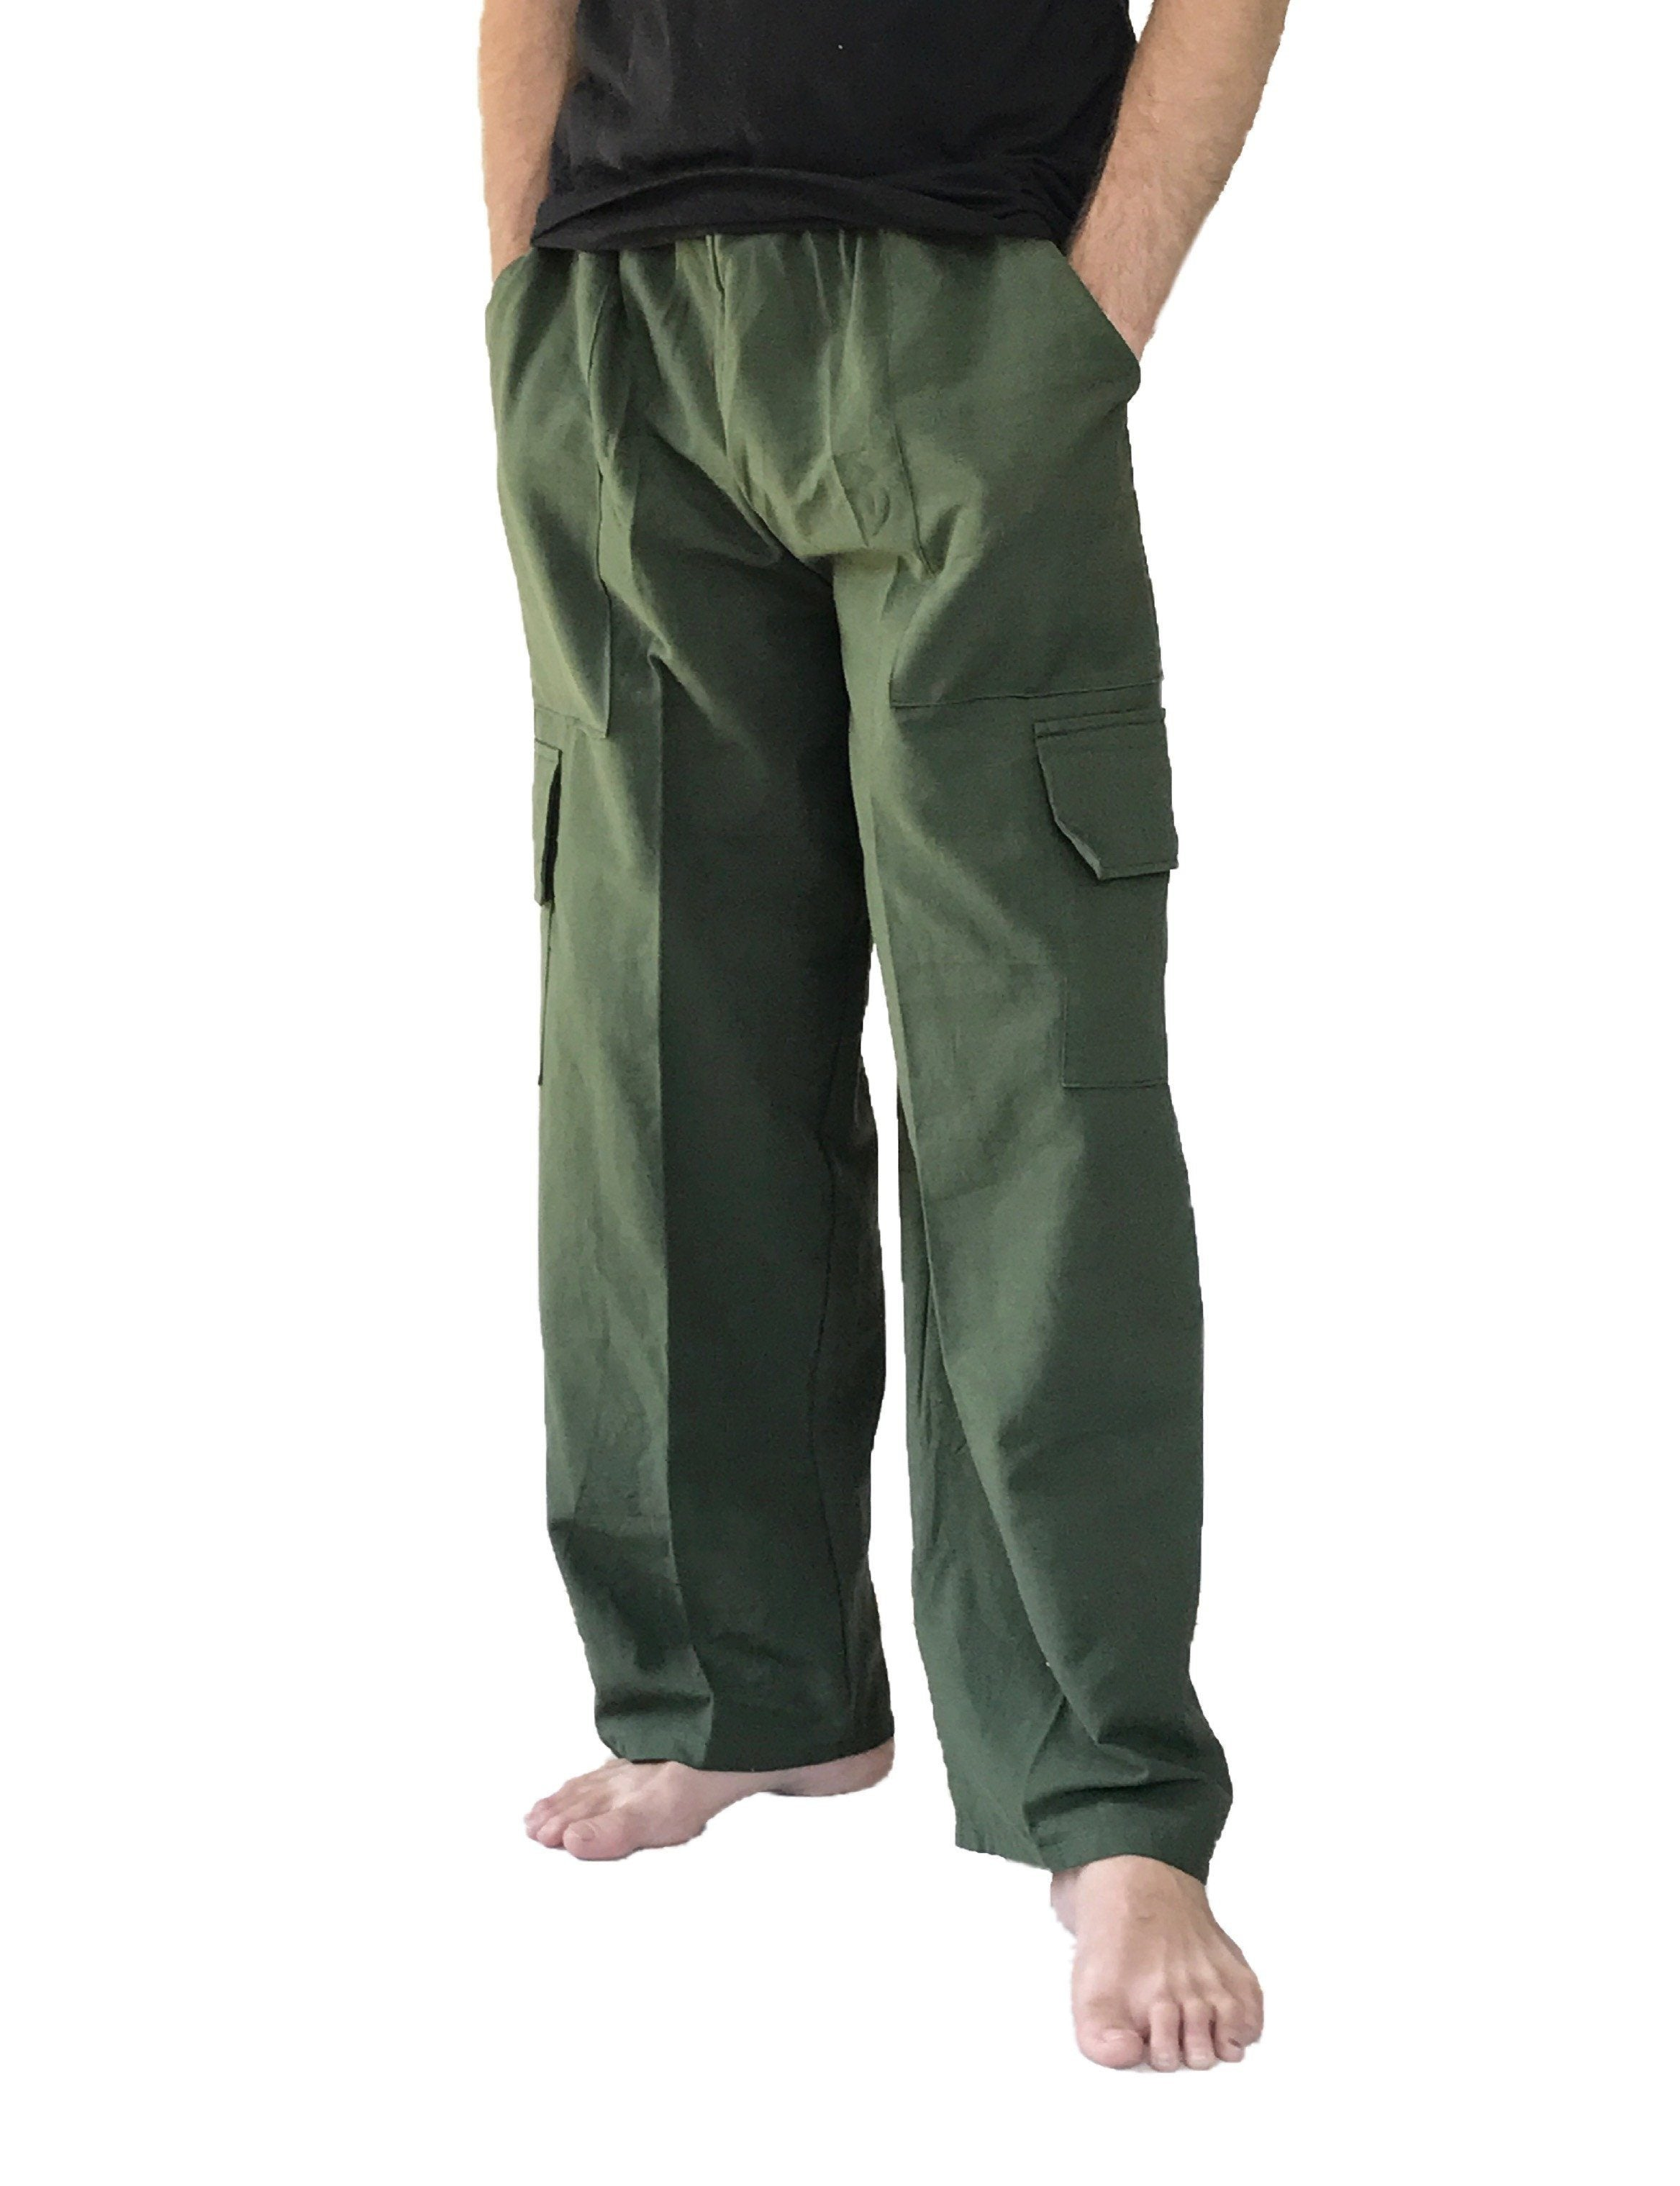 Men's Wear - Men's Cargo Pants 100% Cotton